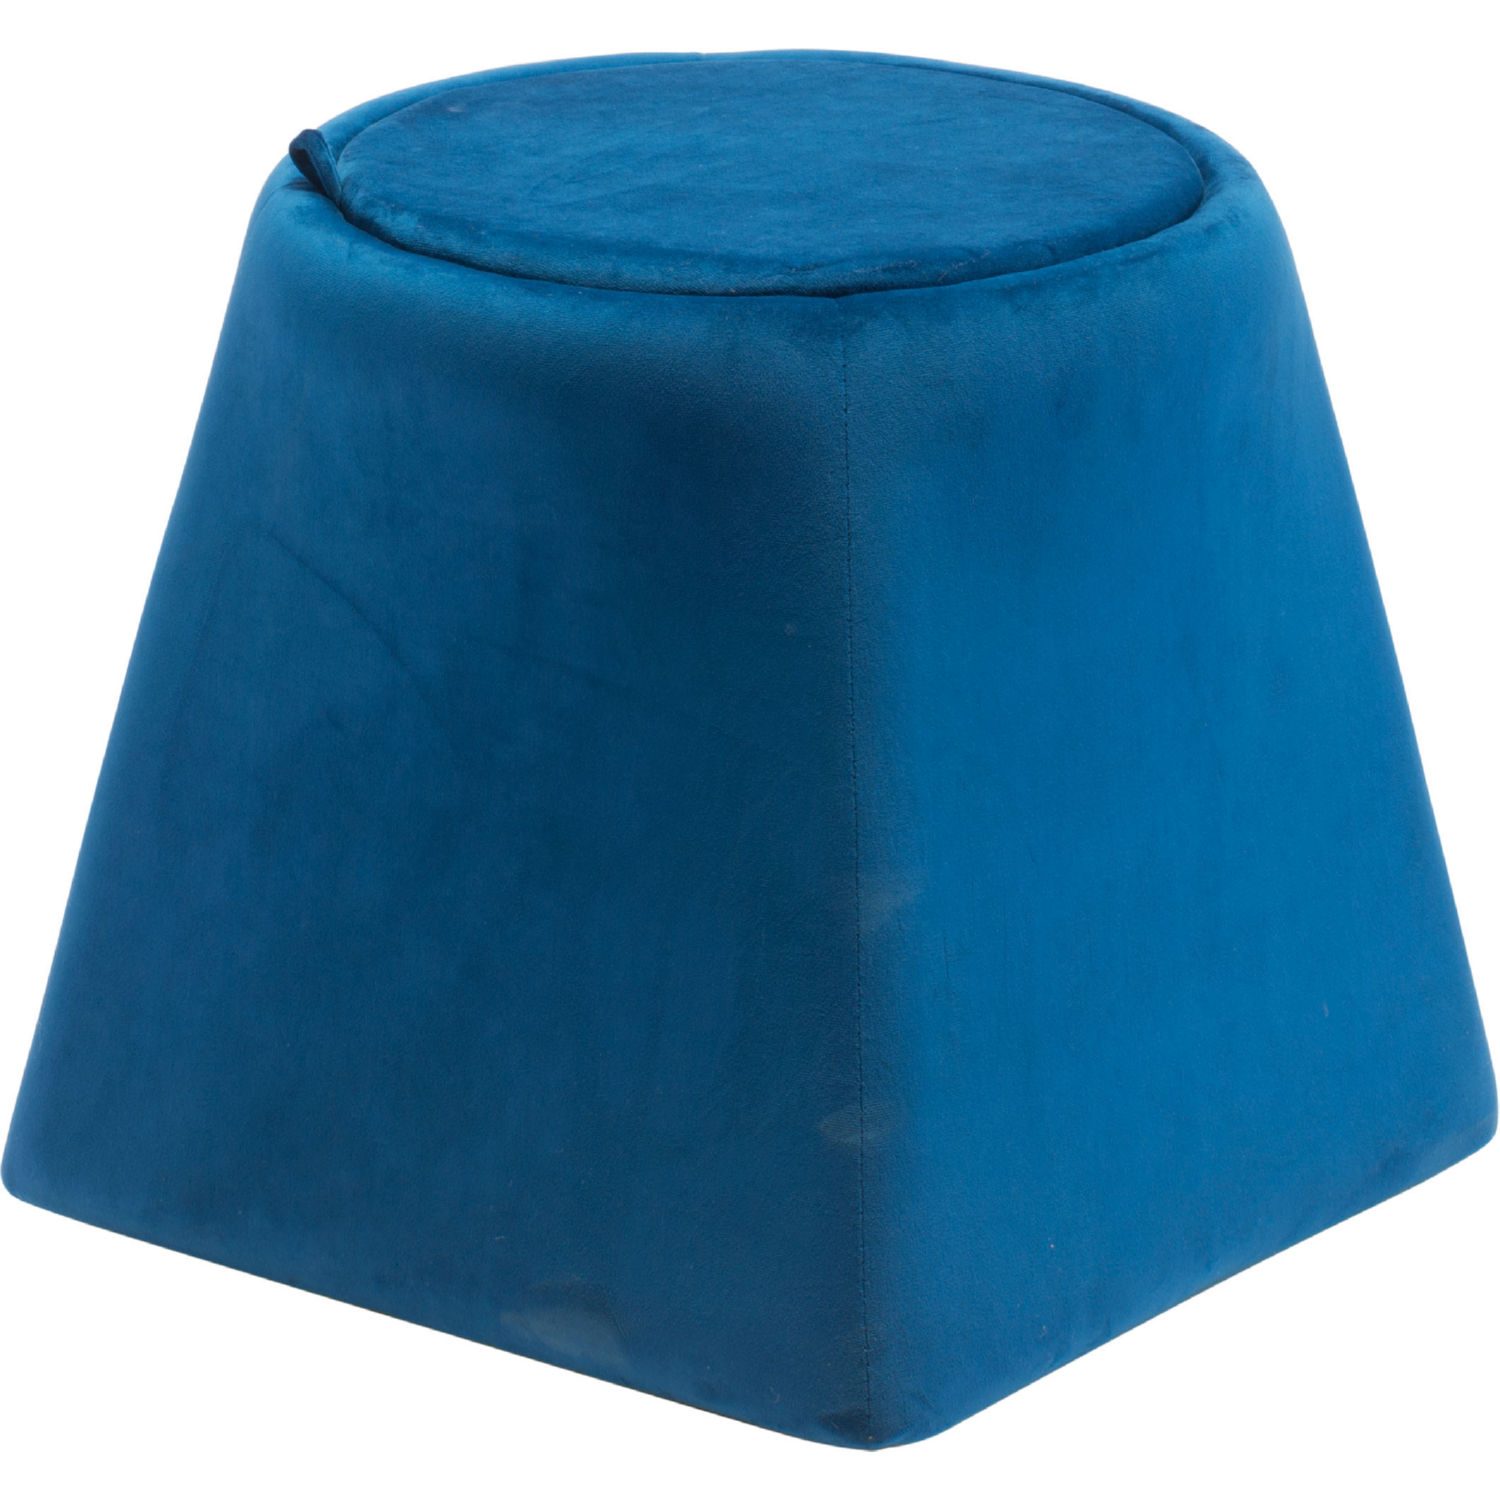 Super Botanical Storage Ottoman In Blue Velvet By Zuo Ocoug Best Dining Table And Chair Ideas Images Ocougorg